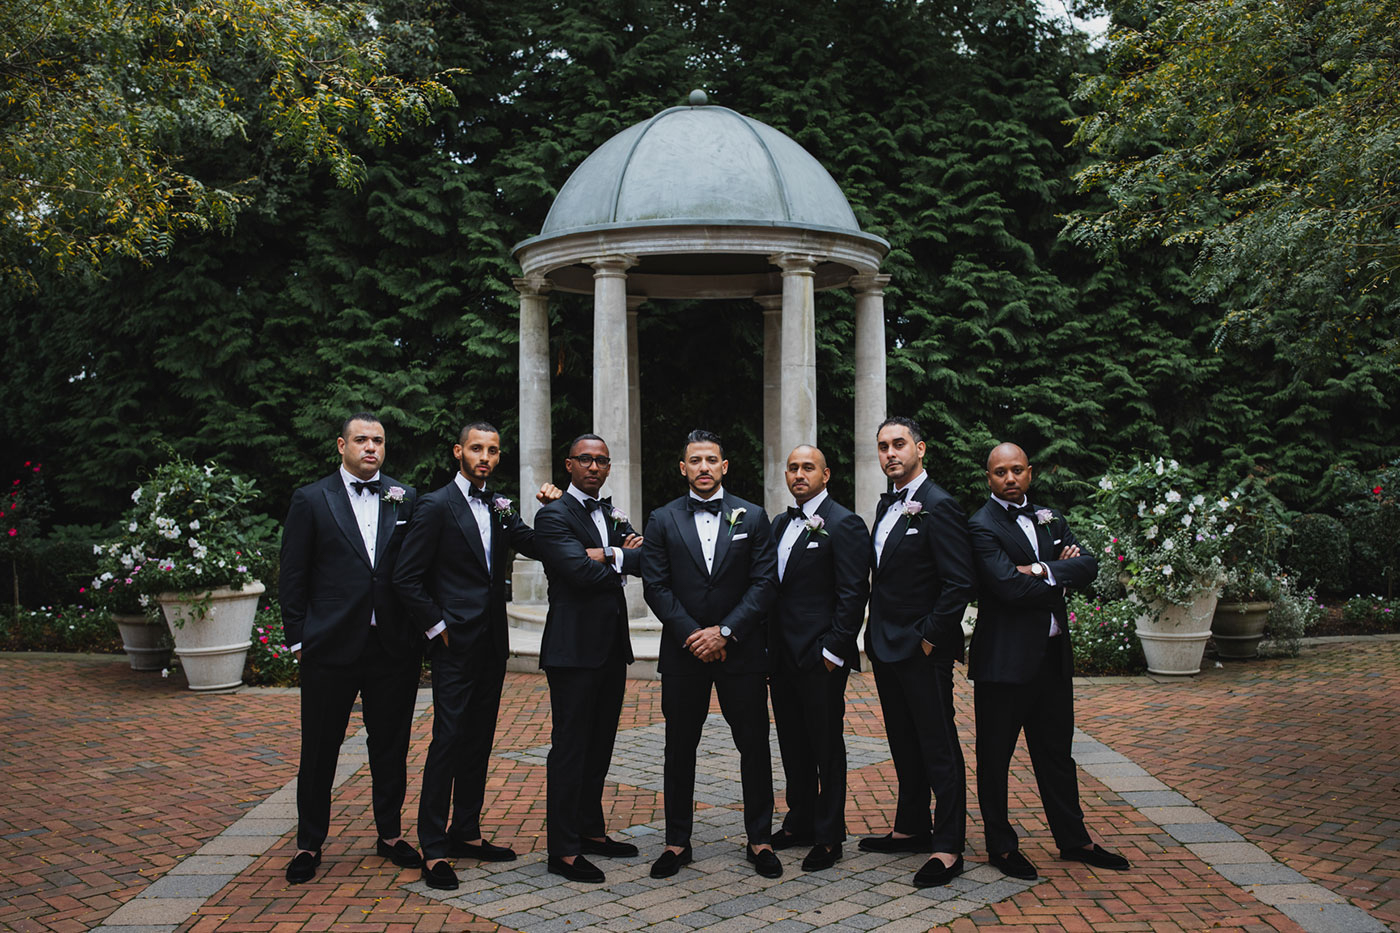 groom and groomsmen at the Estate at Florentine Gardens by Weddings by Hanel